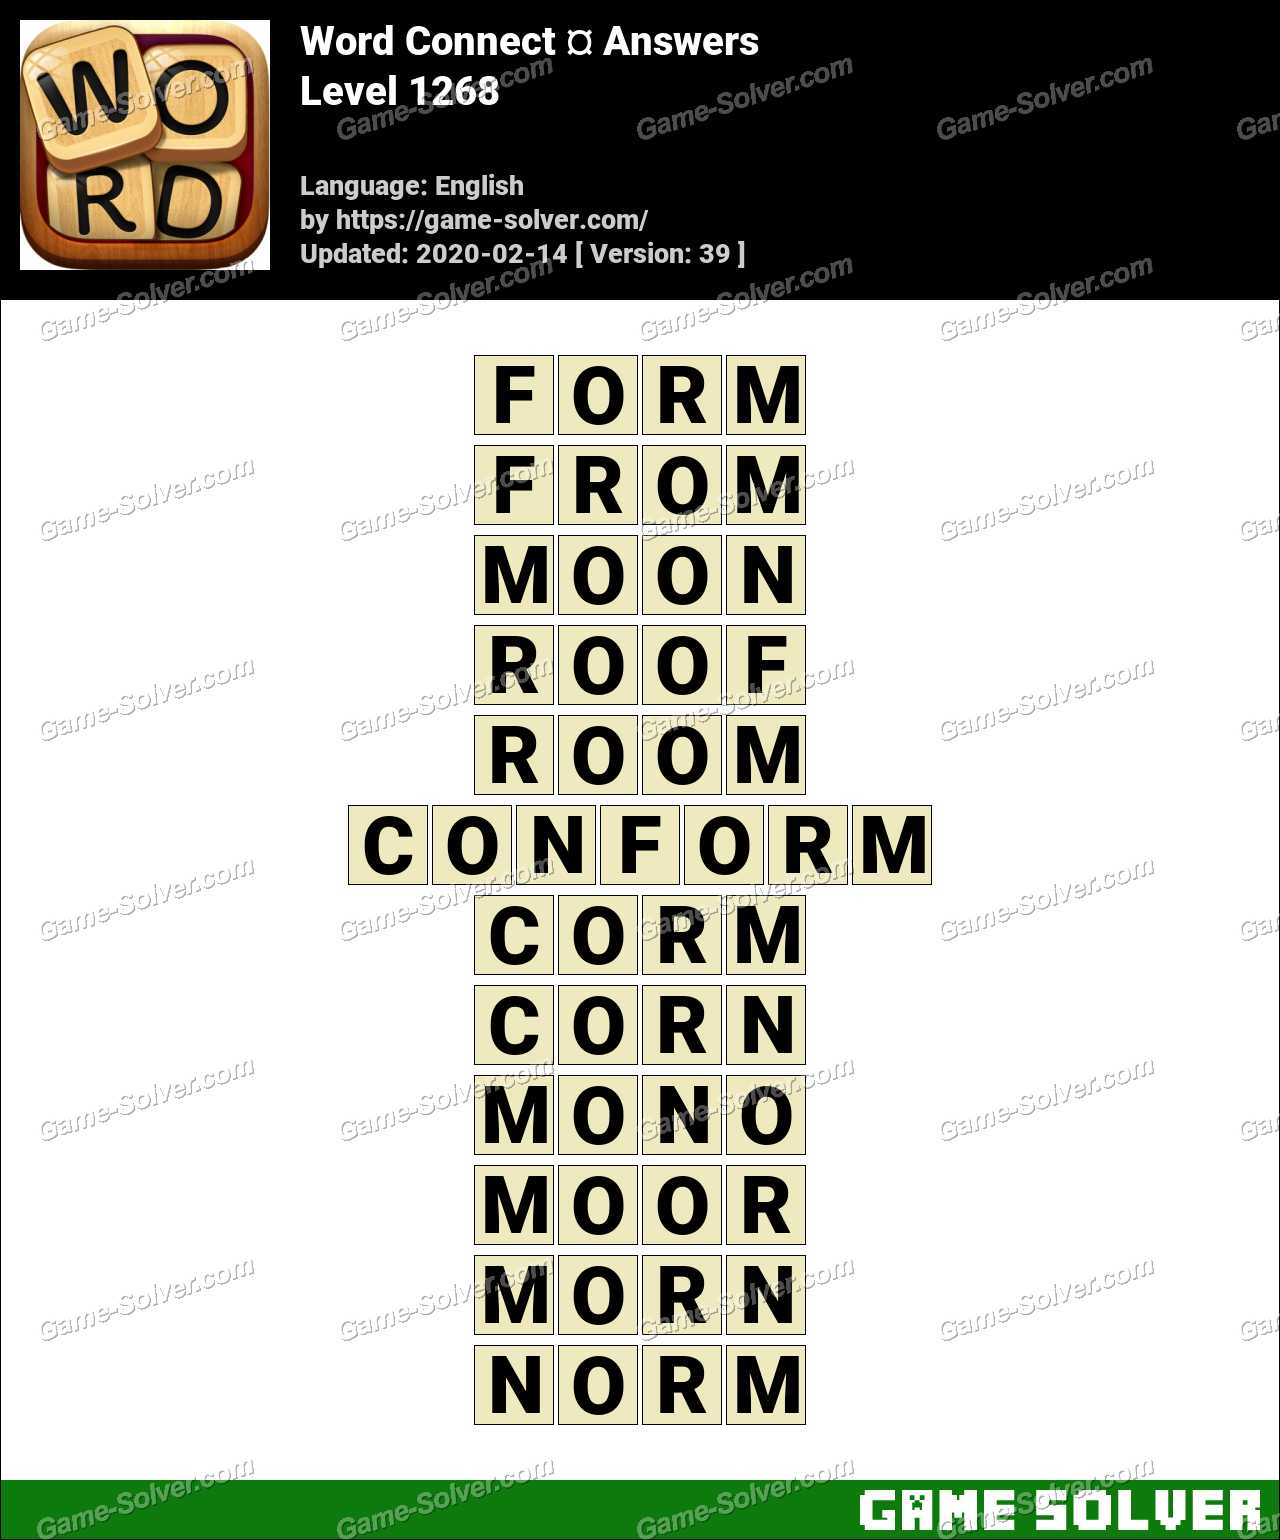 Word Connect Level 1268 Answers